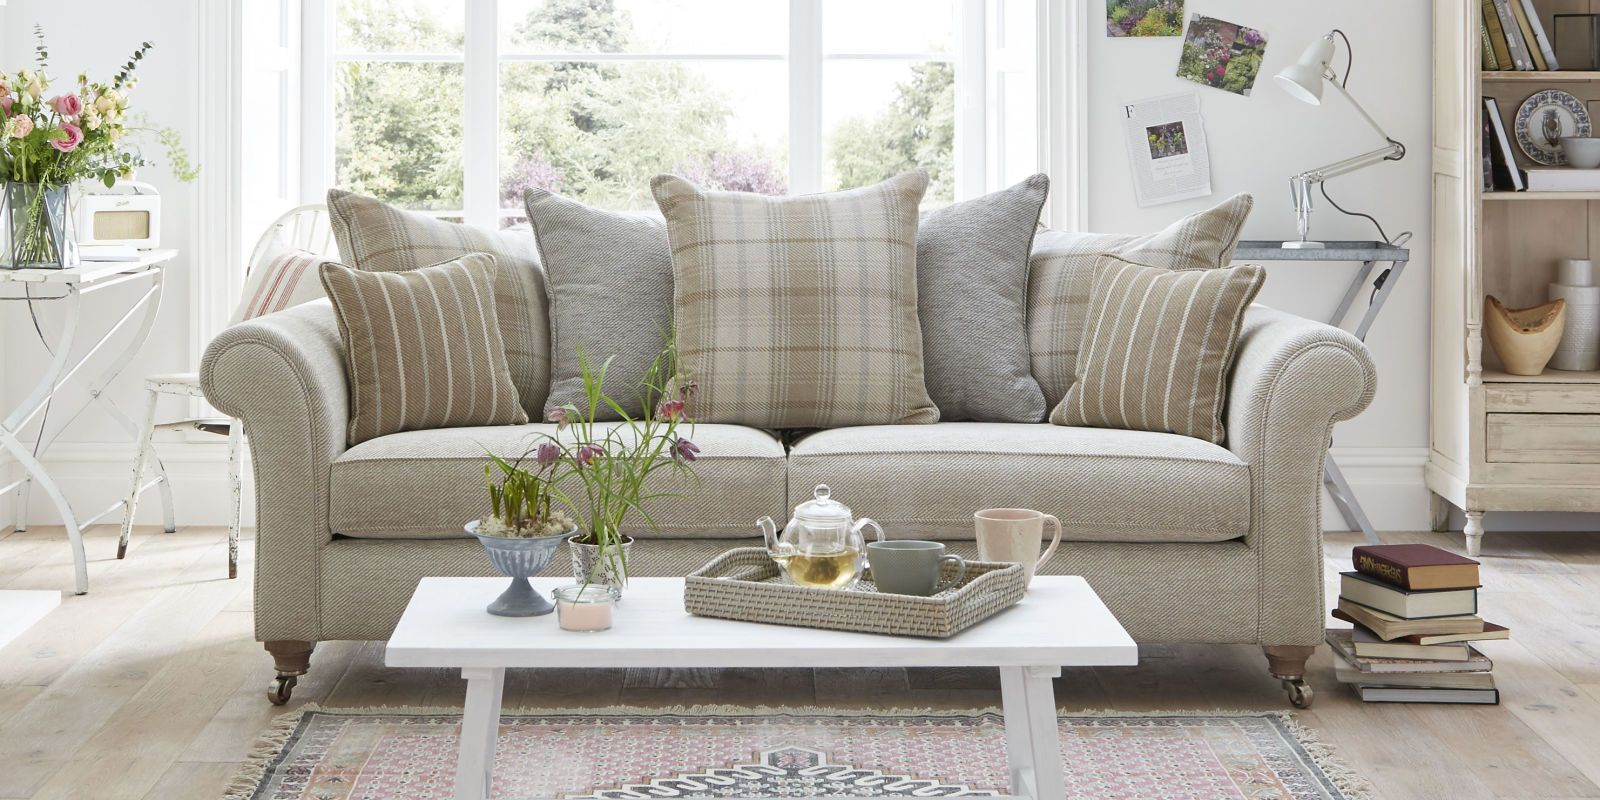 Awesome Country Sofa New 53 Sofas And Couches Set With